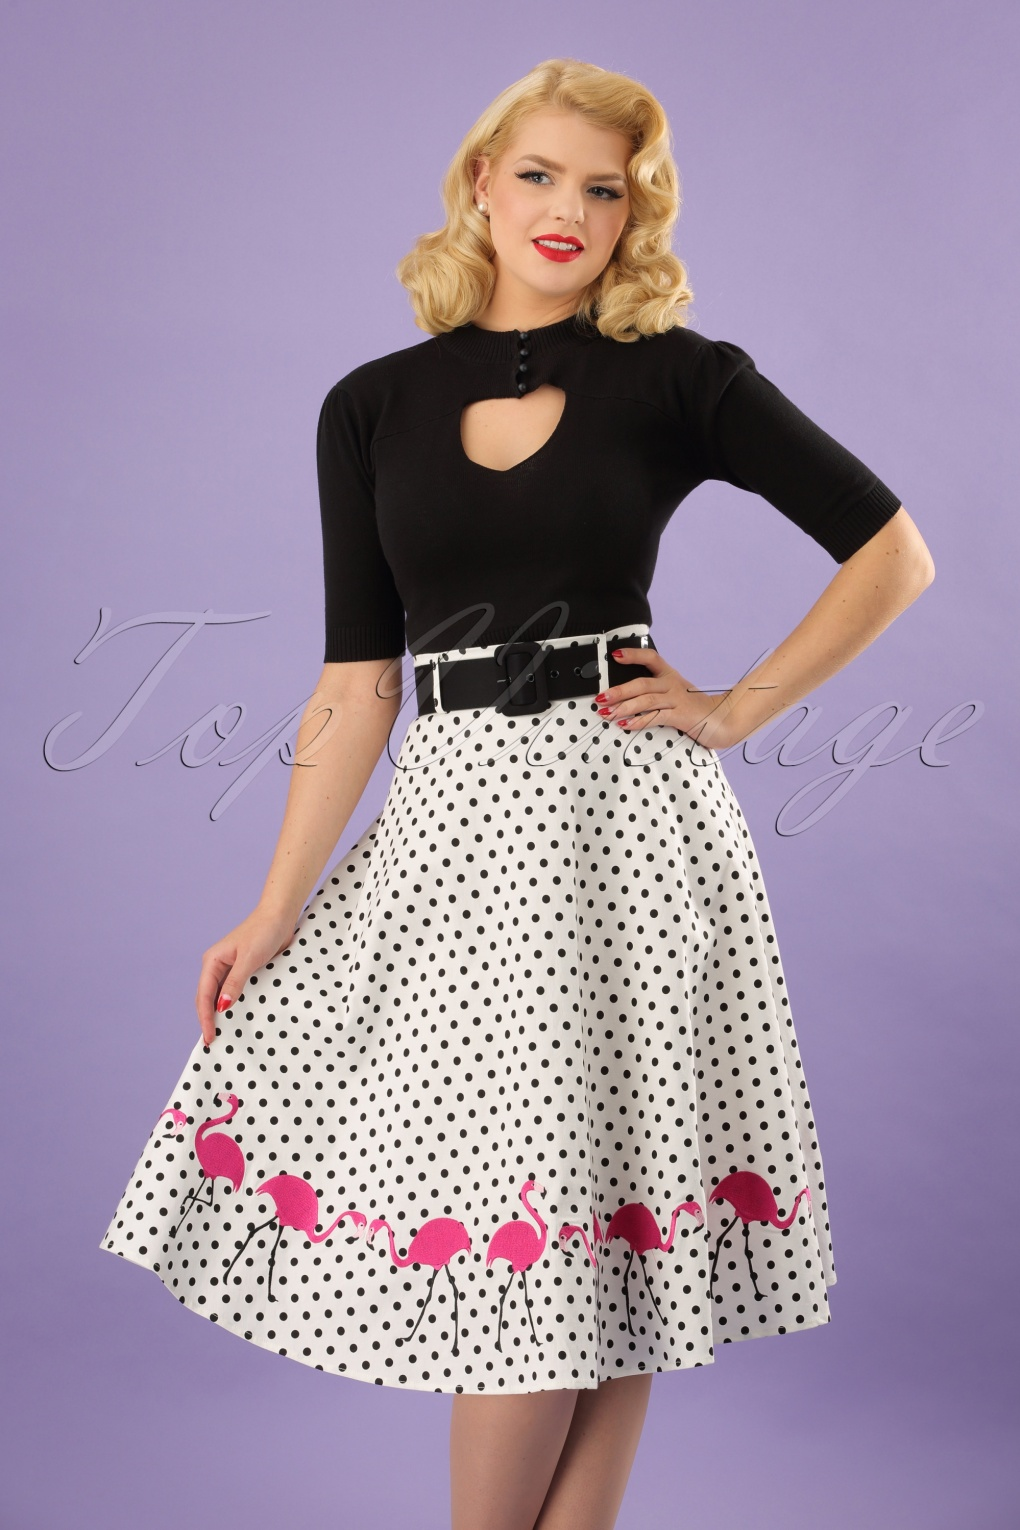 Retro Tiki Dress – Tropical, Hawaiian Dresses 50s Fancy Flamingo Swing Skirt in White £53.83 AT vintagedancer.com